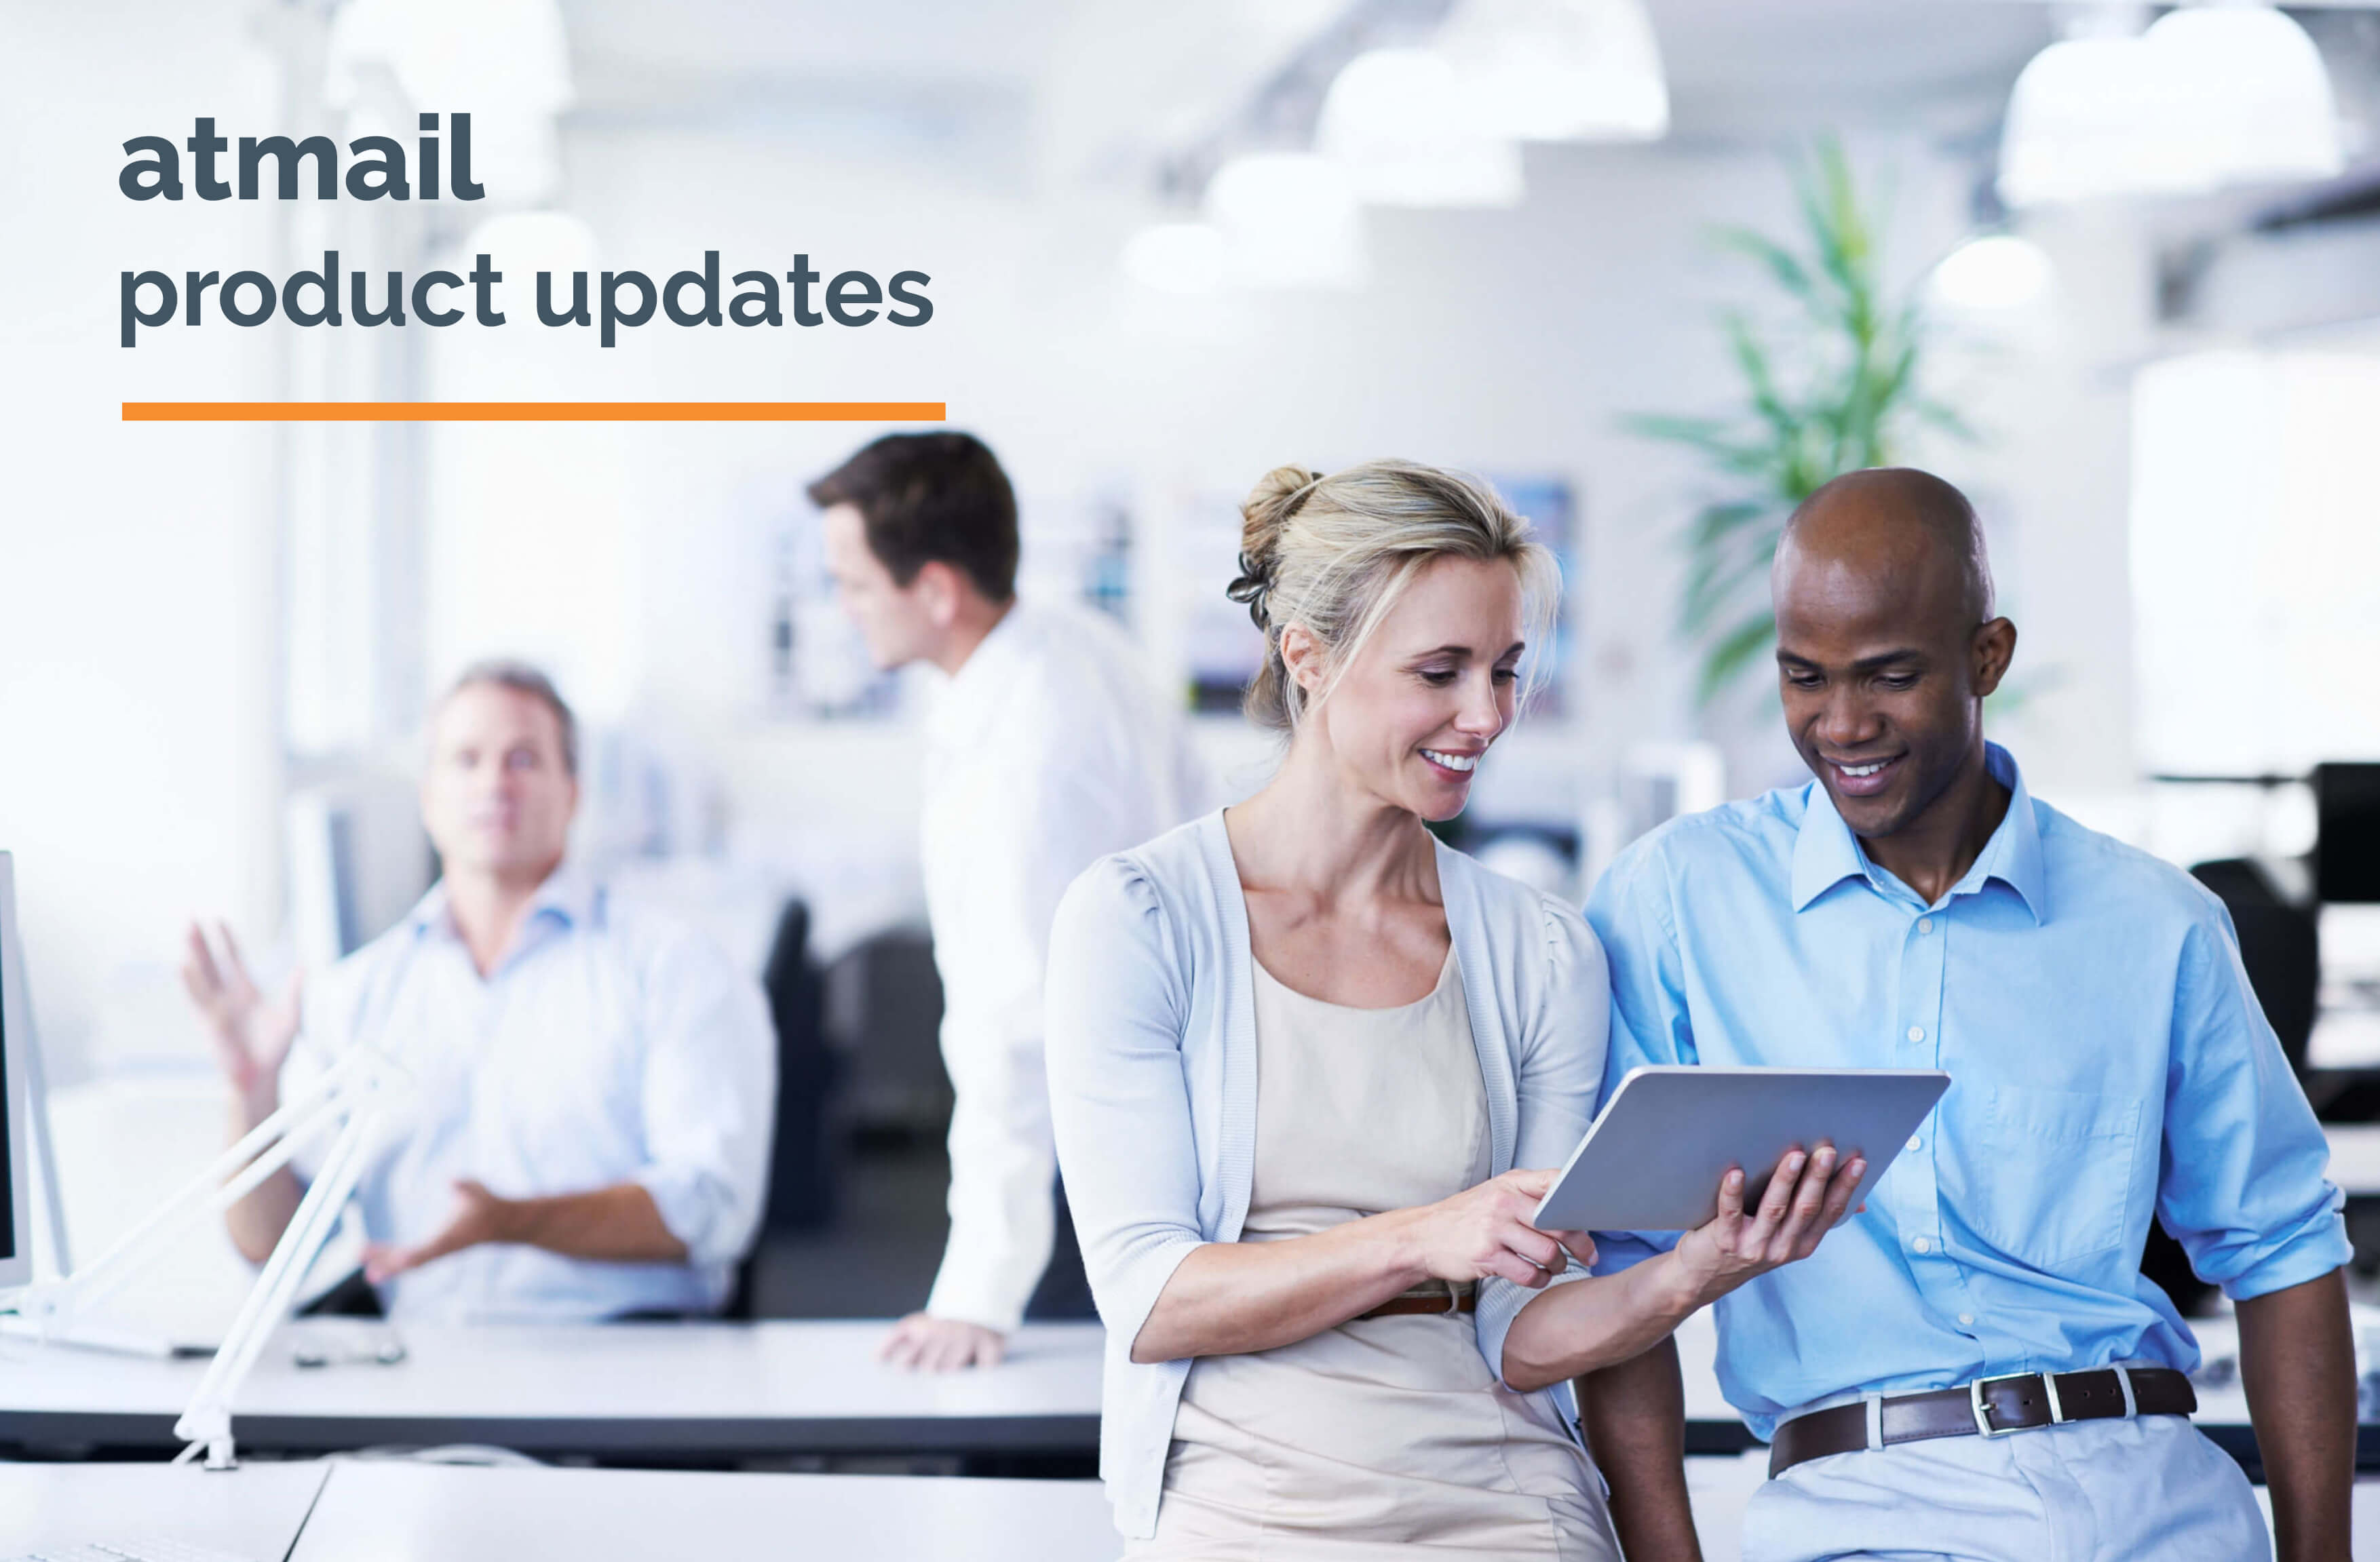 atmail product updates, atmail email experts, atmail email solutions, atmail product releases, atmail news, atmail 8.4.1, atmail suite, atmail mail server